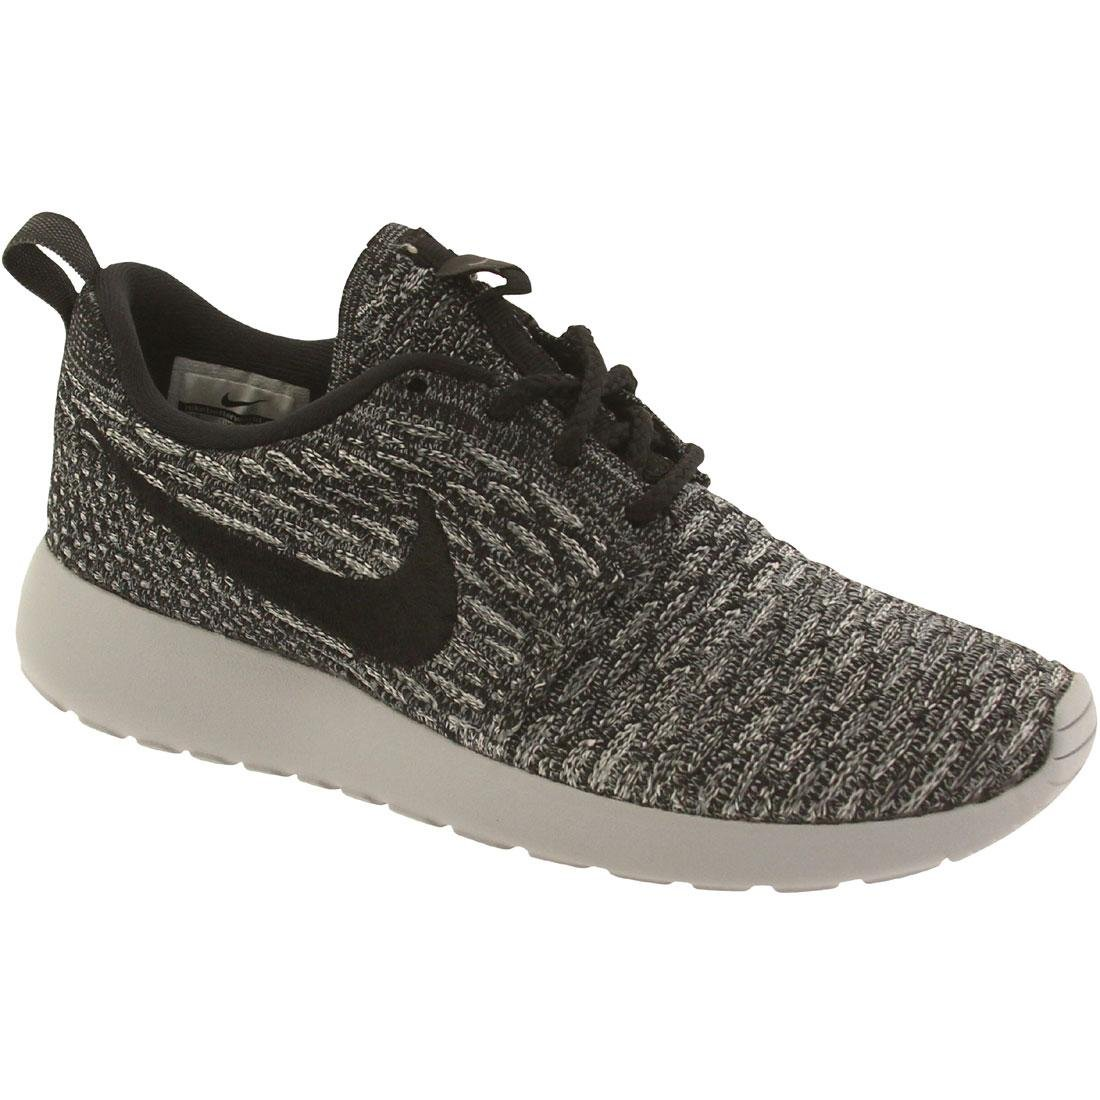 factory authentic 8999f b8c8e NIKE Womens WMNS Roshe One Flyknit Light Armory Blue/Platinum-White Fabric